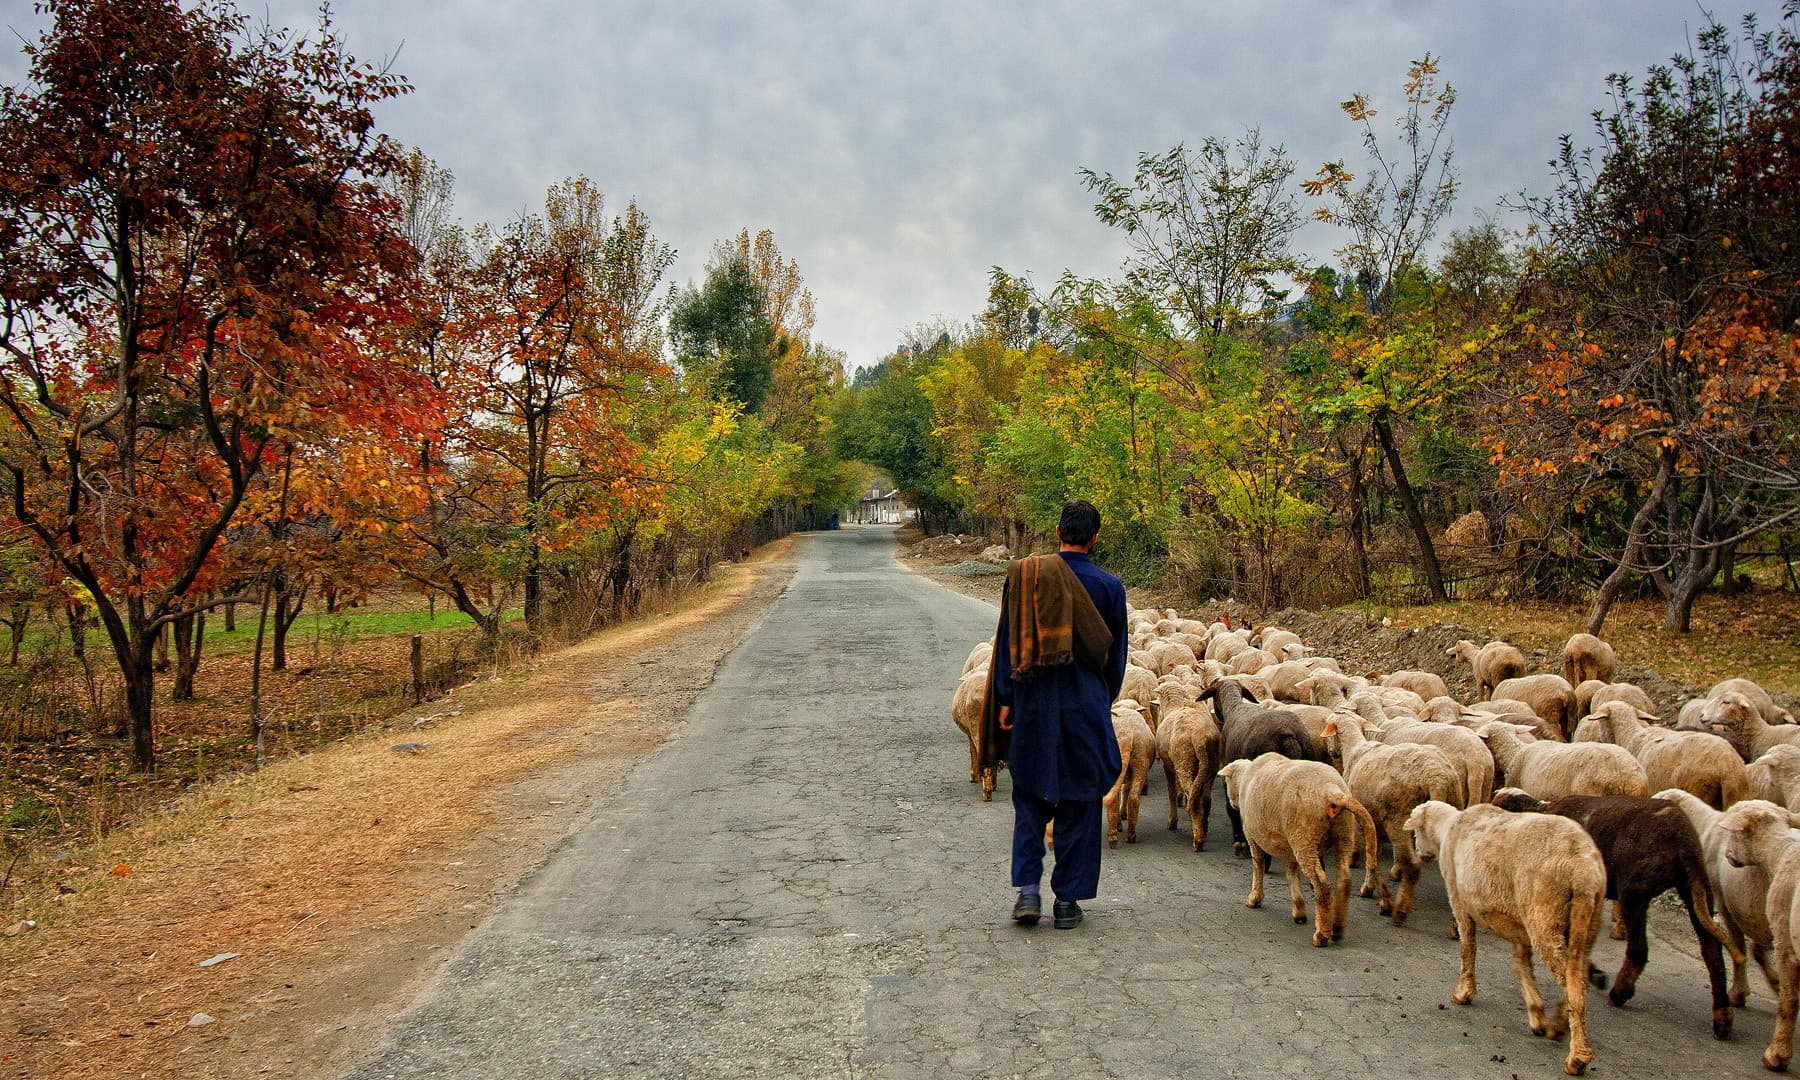 A shepherd boy heading home with his sheep.